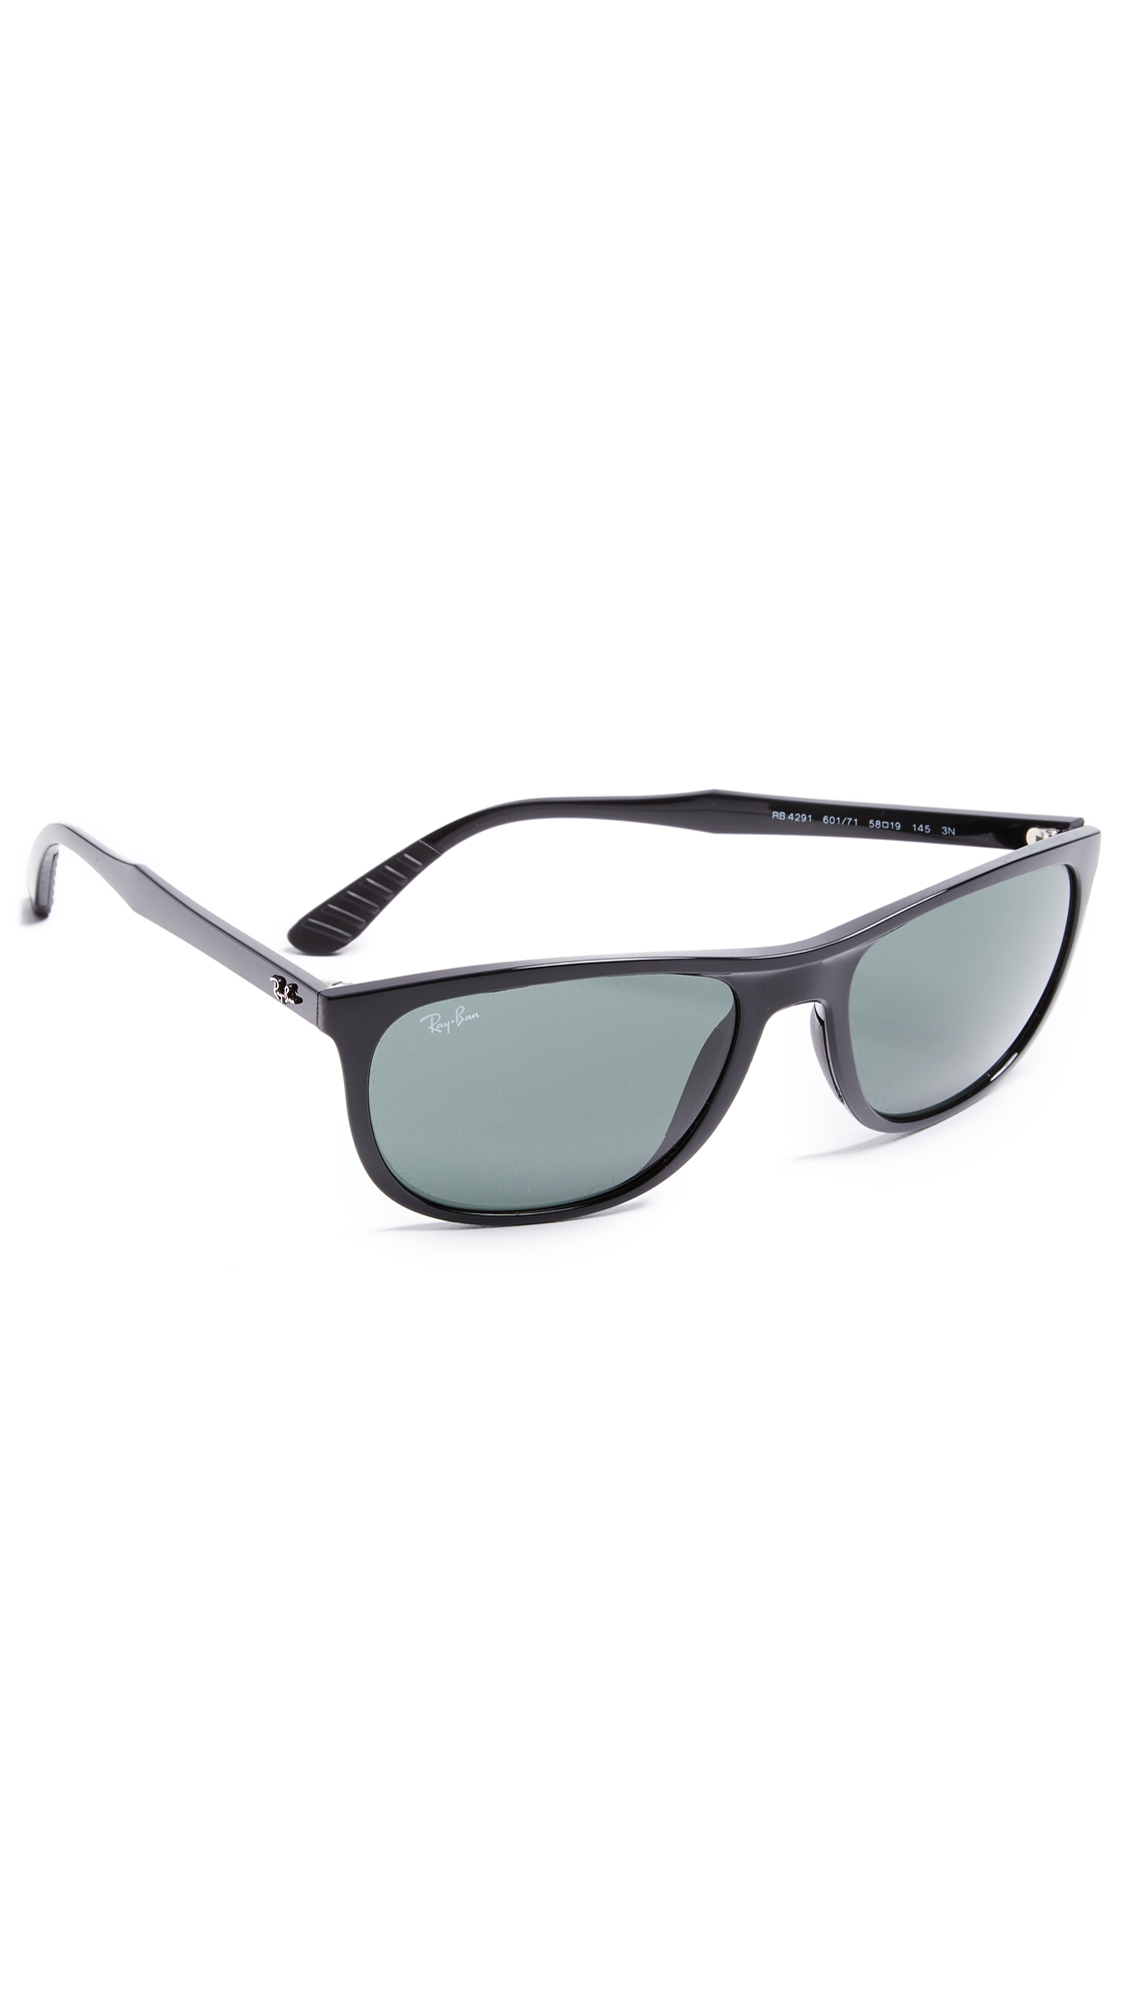 a76107d959 Ray-Ban RB4291 Sunglasses